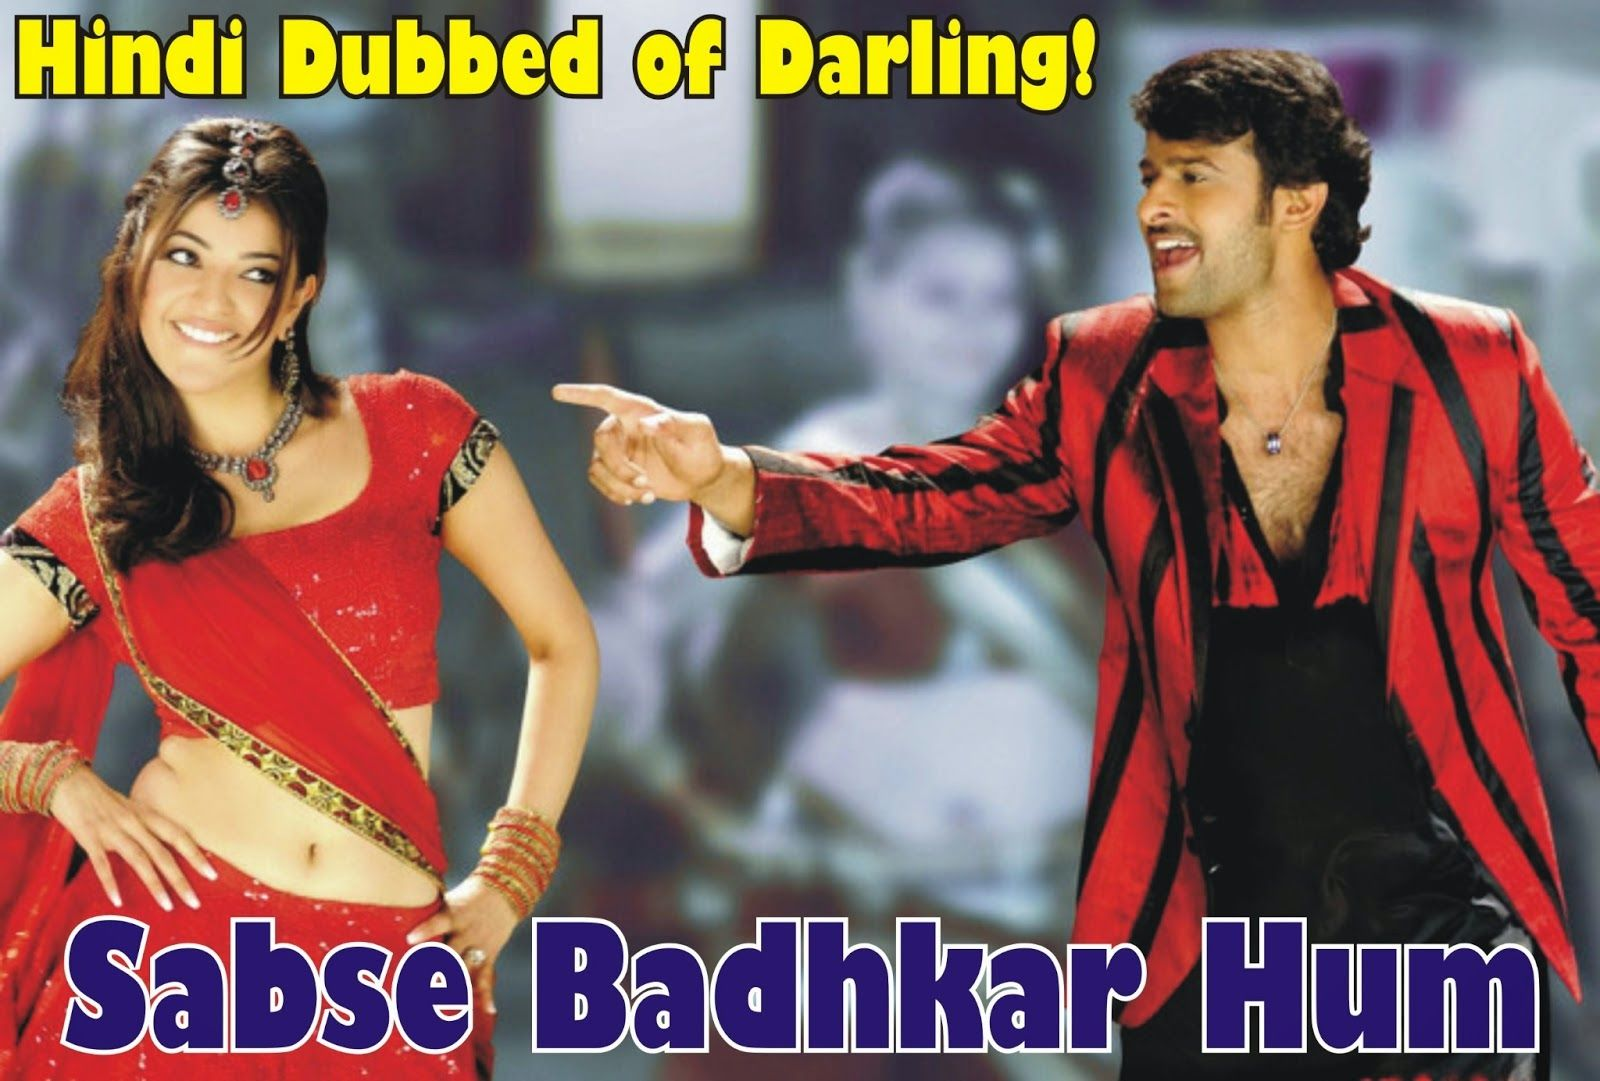 Hindi dubbed tamiltelugu film watch online sabse badhkar hum hindi dubbed tamiltelugu film watch online sabse badhkar hum darling altavistaventures Image collections